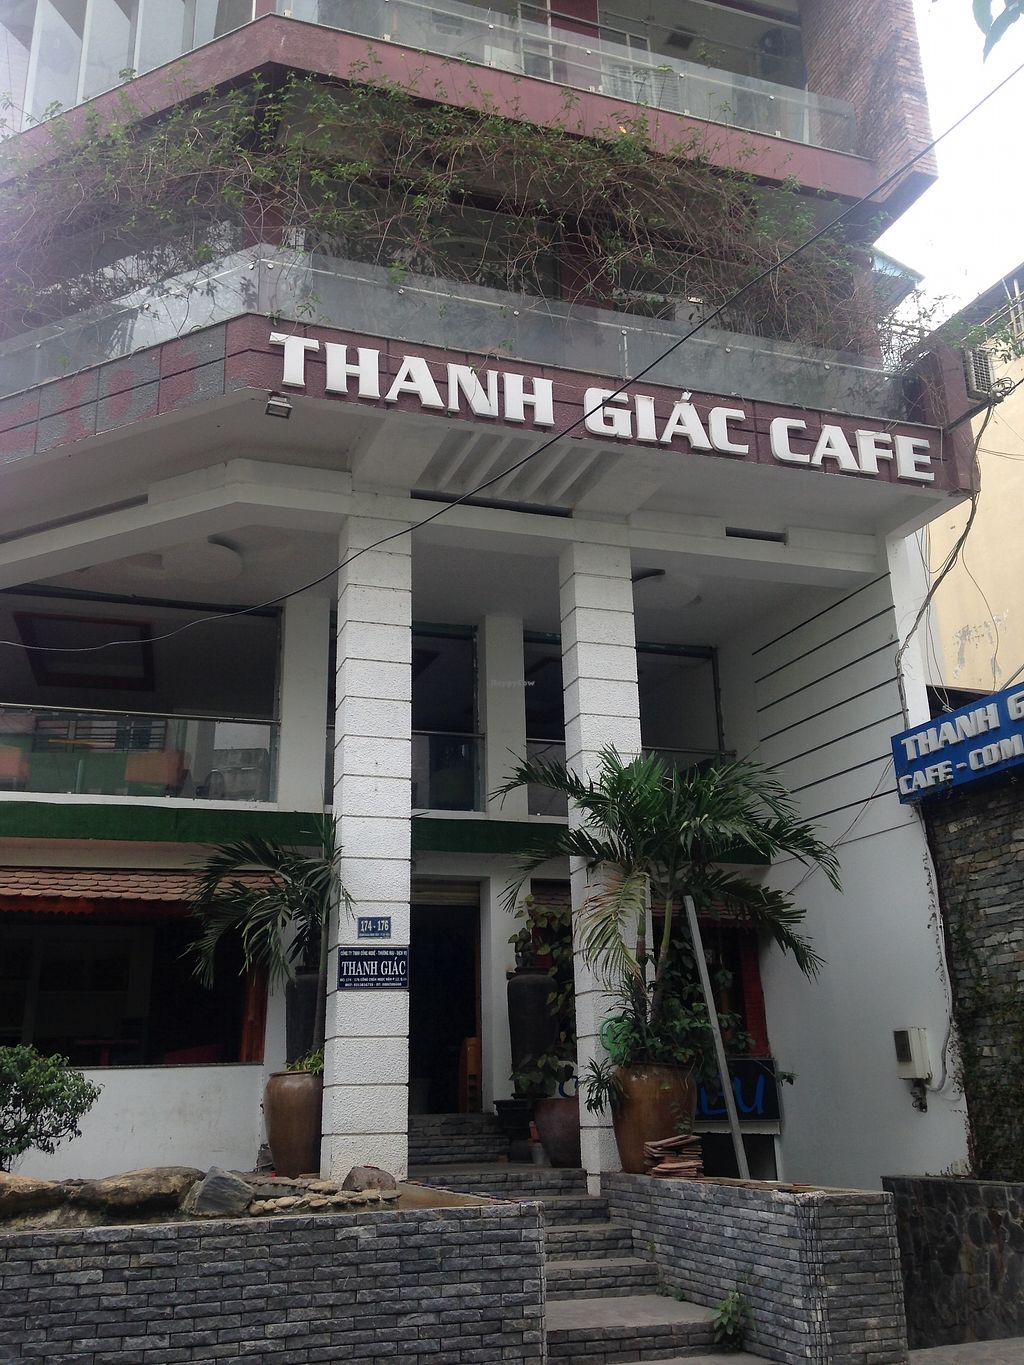 """Photo of Thanh Giac Cafe  by <a href=""""/members/profile/harryang"""">harryang</a> <br/>Thanh giac <br/> January 7, 2018  - <a href='/contact/abuse/image/102308/343900'>Report</a>"""